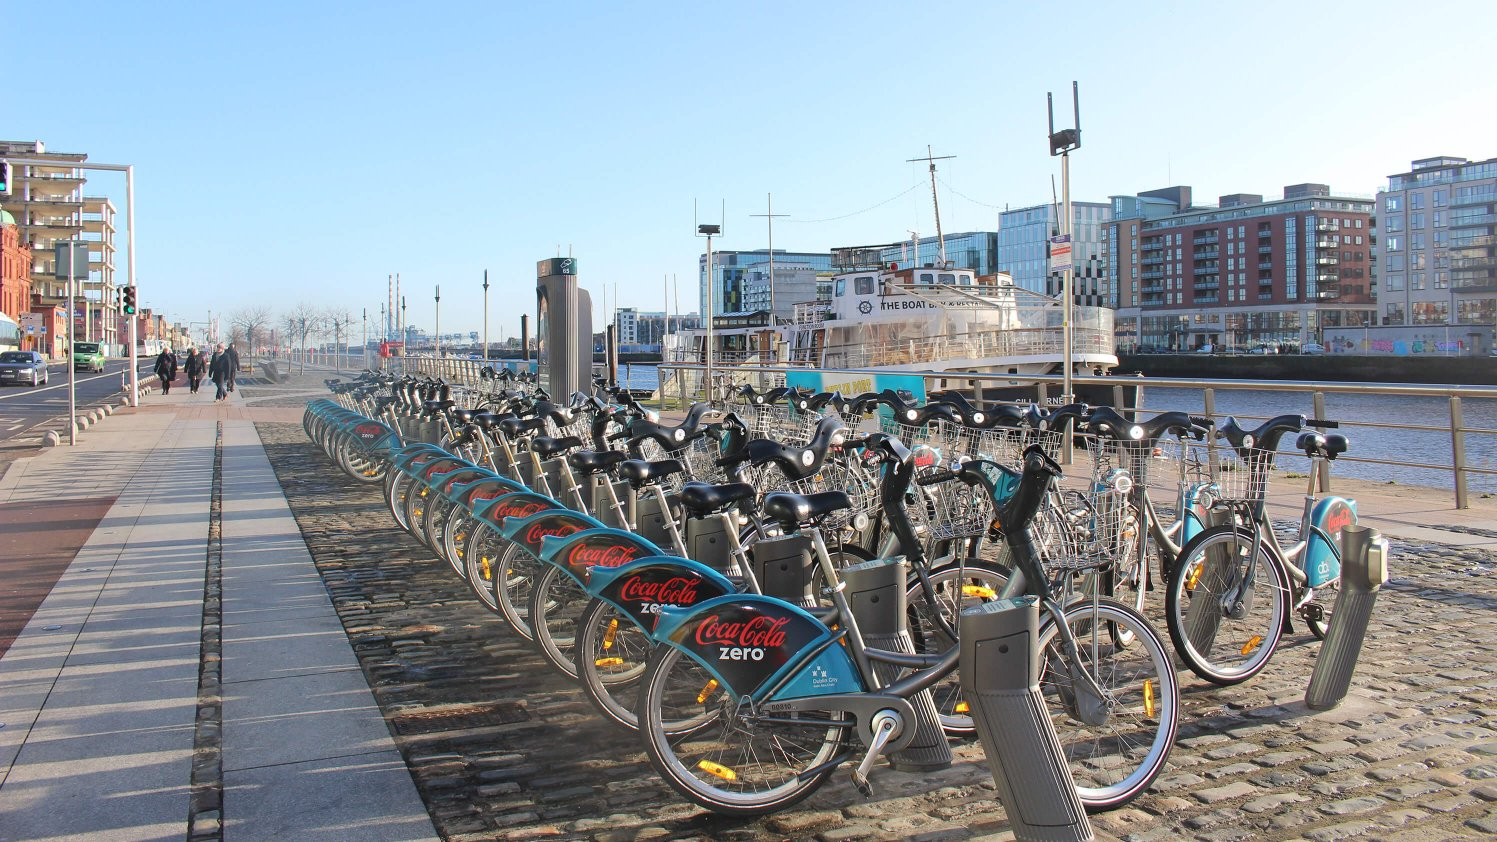 Dublin Bikes docking station on the River Liffey